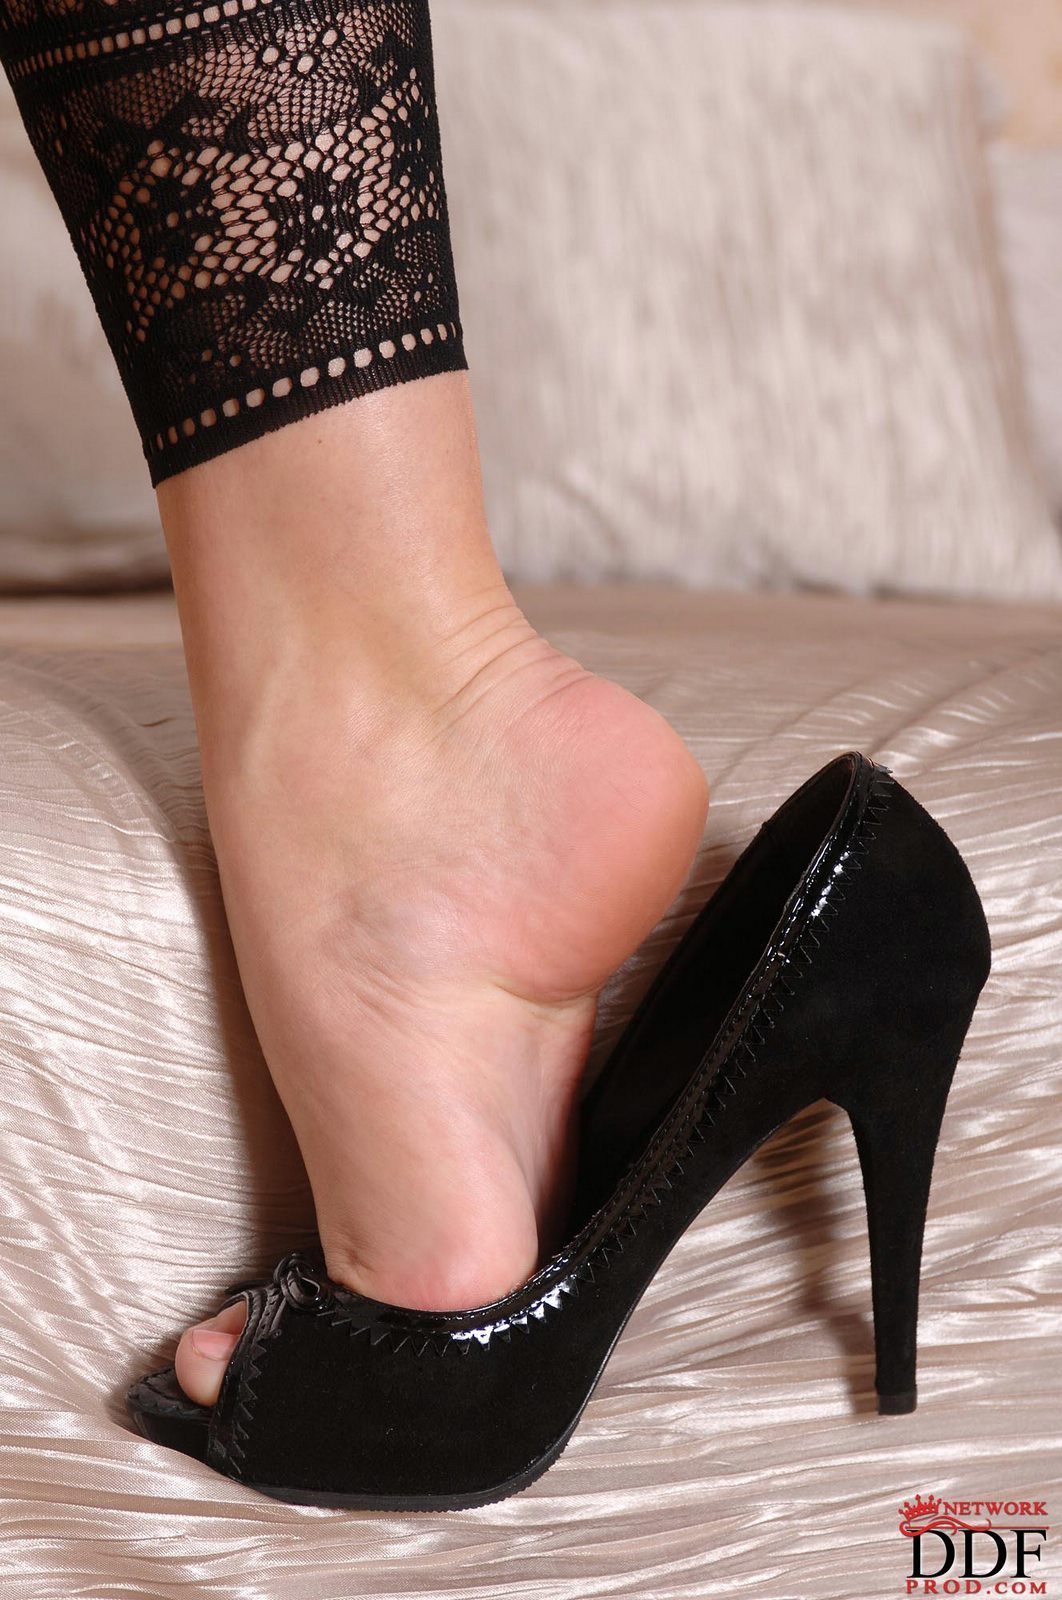 Zafira in sexy pantyhose showing off her smooth feet - My ...